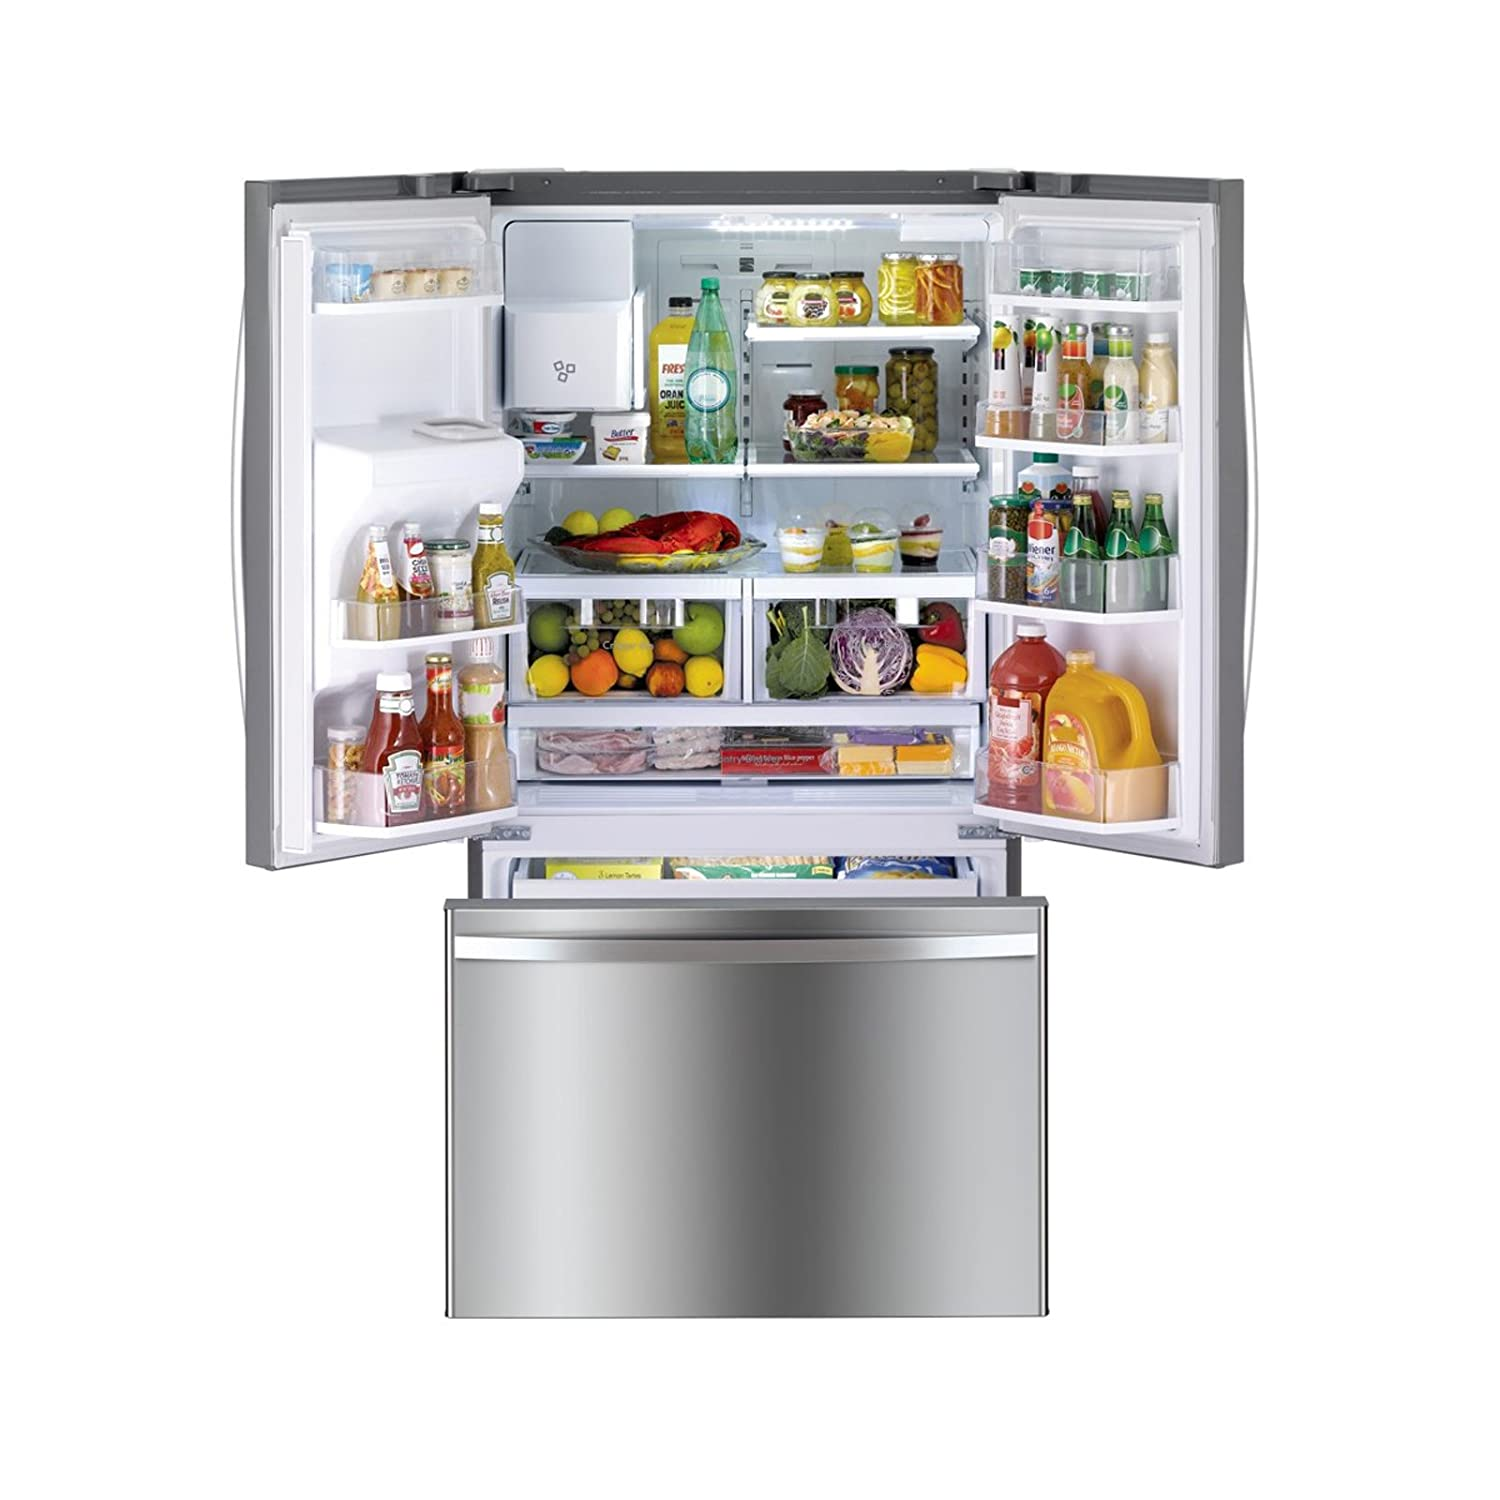 Amazon Kenmore 25 6 cu ft French Door Refrigerator with